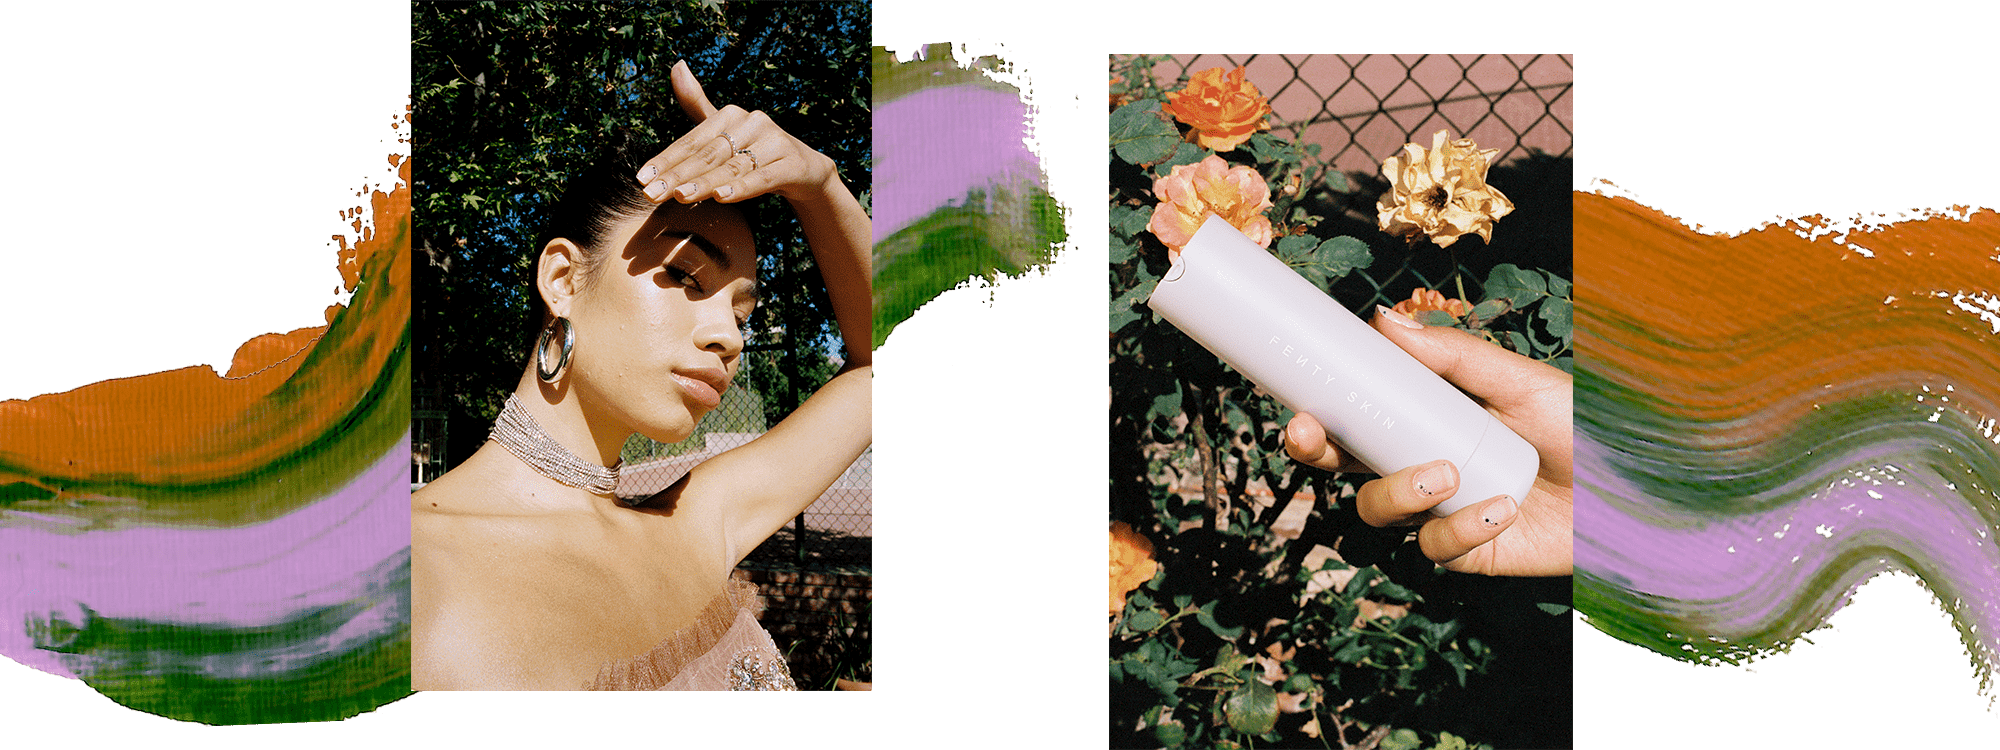 Model Ariel Toole wearing a beige tulle tube top and silver necklace. She is holding her hand over her face to shield the sun. In the second image, a model is holding a bottle of Fenty sunscreen over a flower bush. There is a pink, orange, and green paint swatch behind the images.